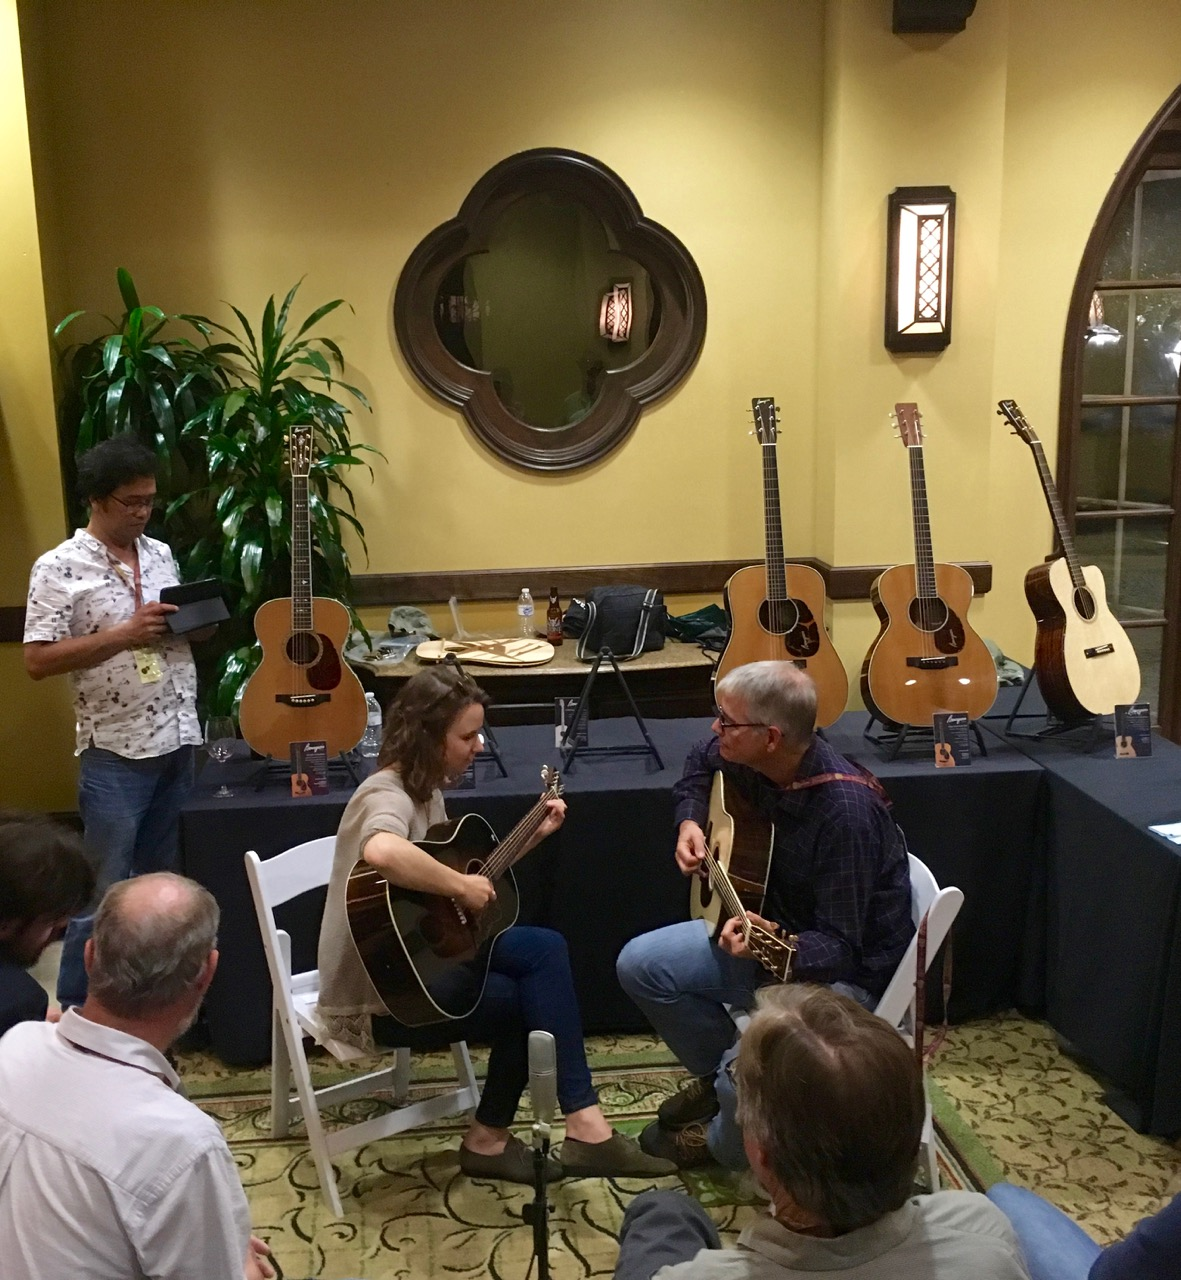 Courtney Hartman and Scott Nygard playing together at the Bourgeois booth